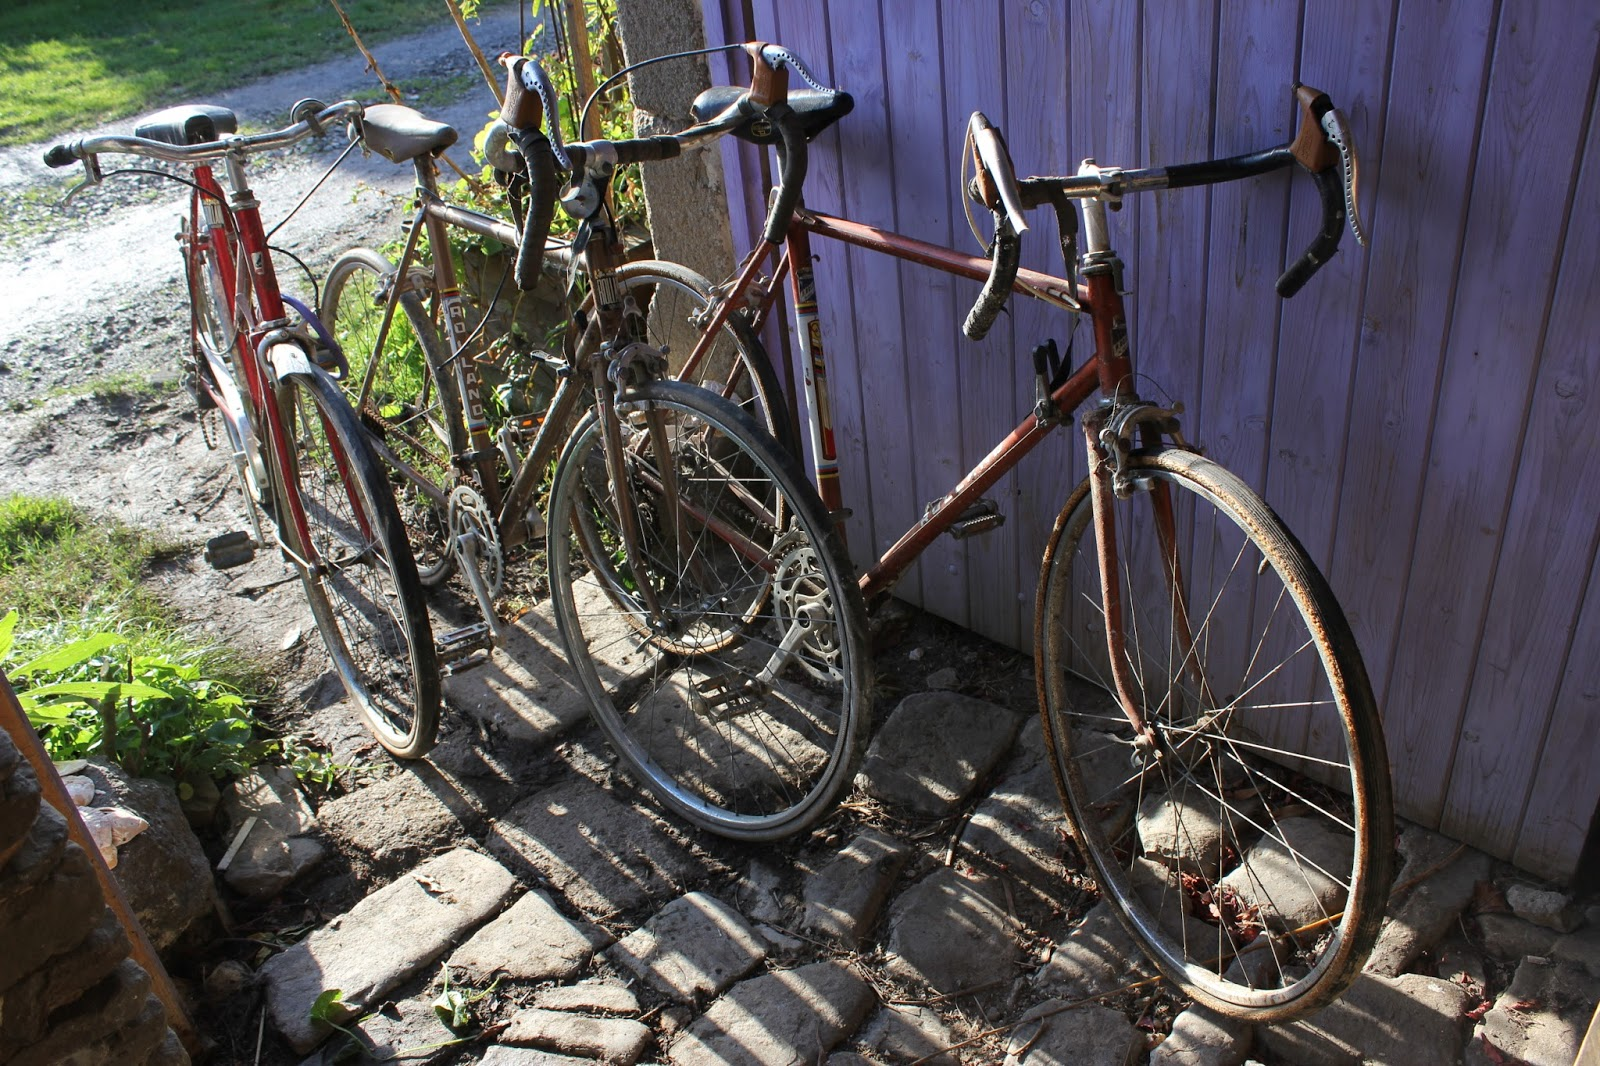 Bicycles rescued from the dump